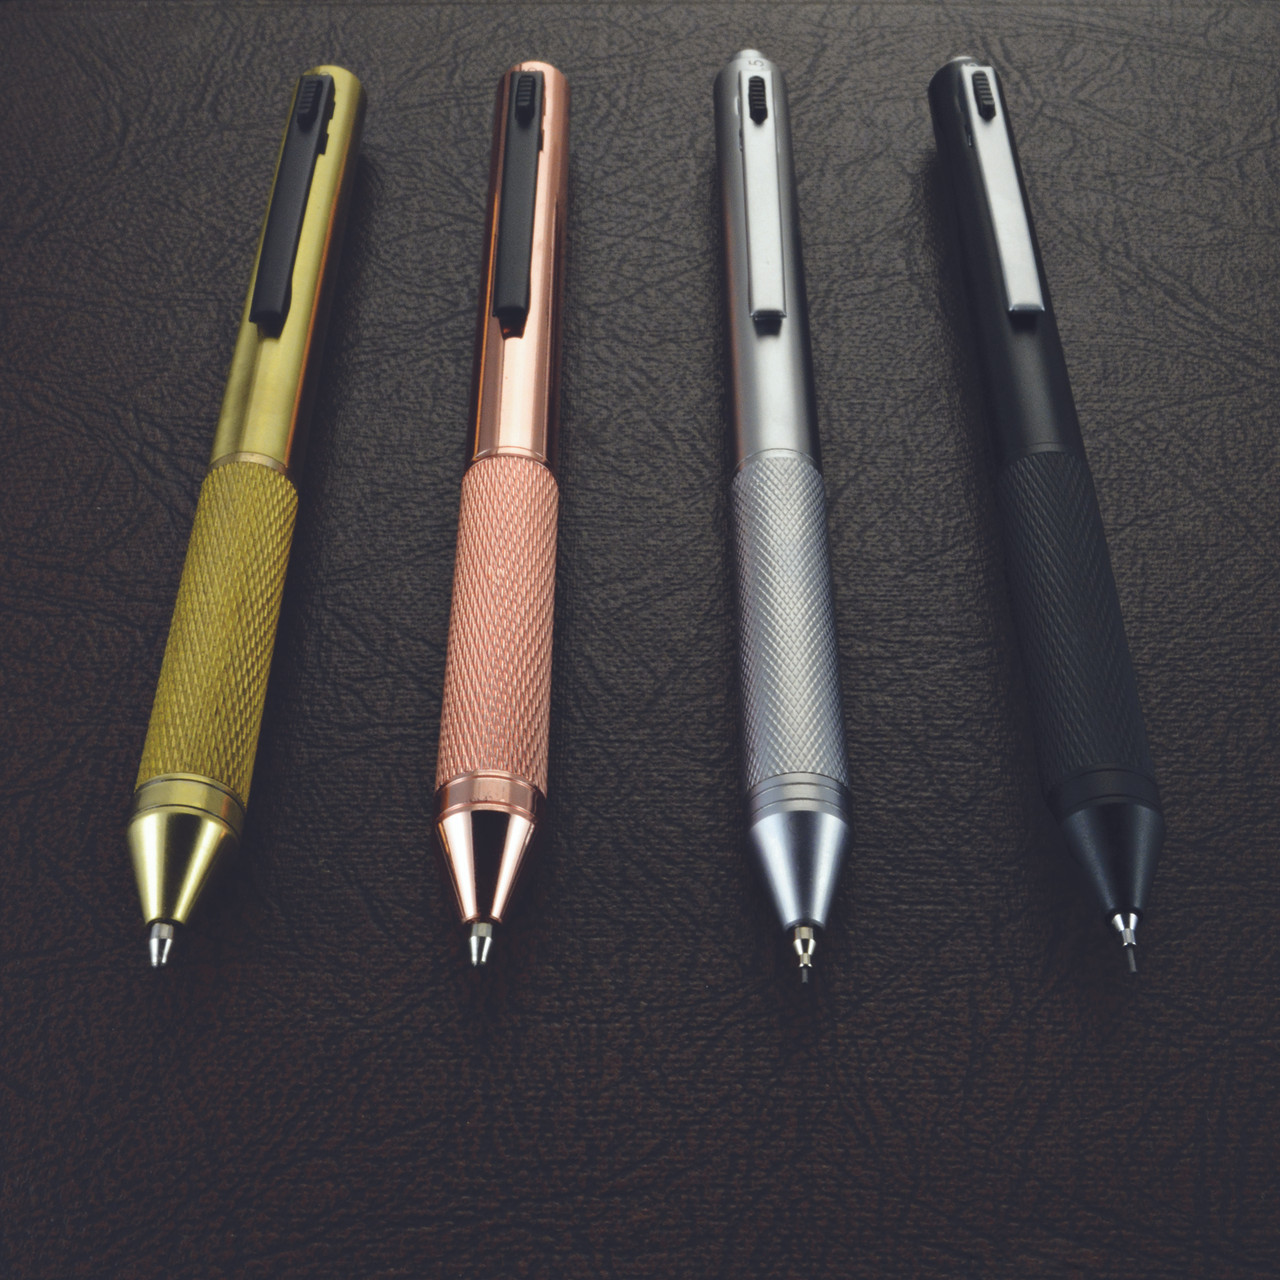 Monteverde Quadro 4 in 1 multi-function pen and mechanical pencil